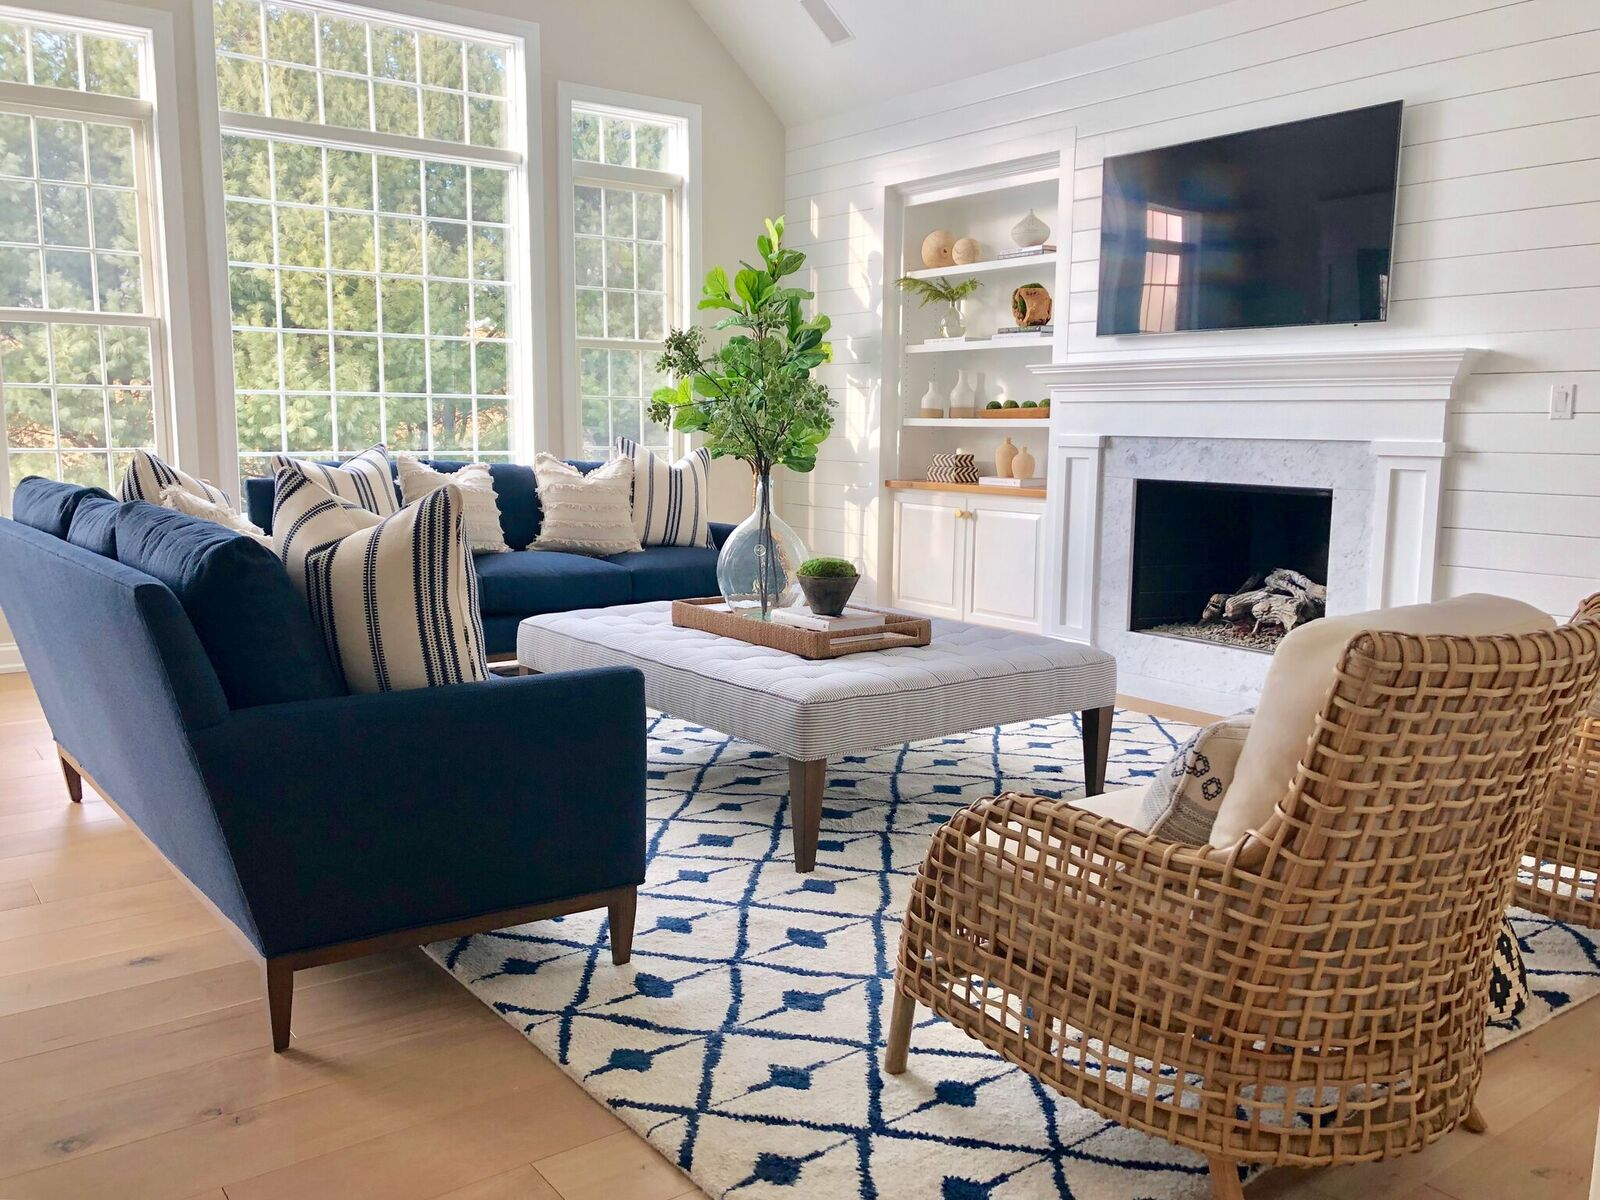 stephanie-kraus-designs-mainline-pa-family-room-project-after-sofas.jpg